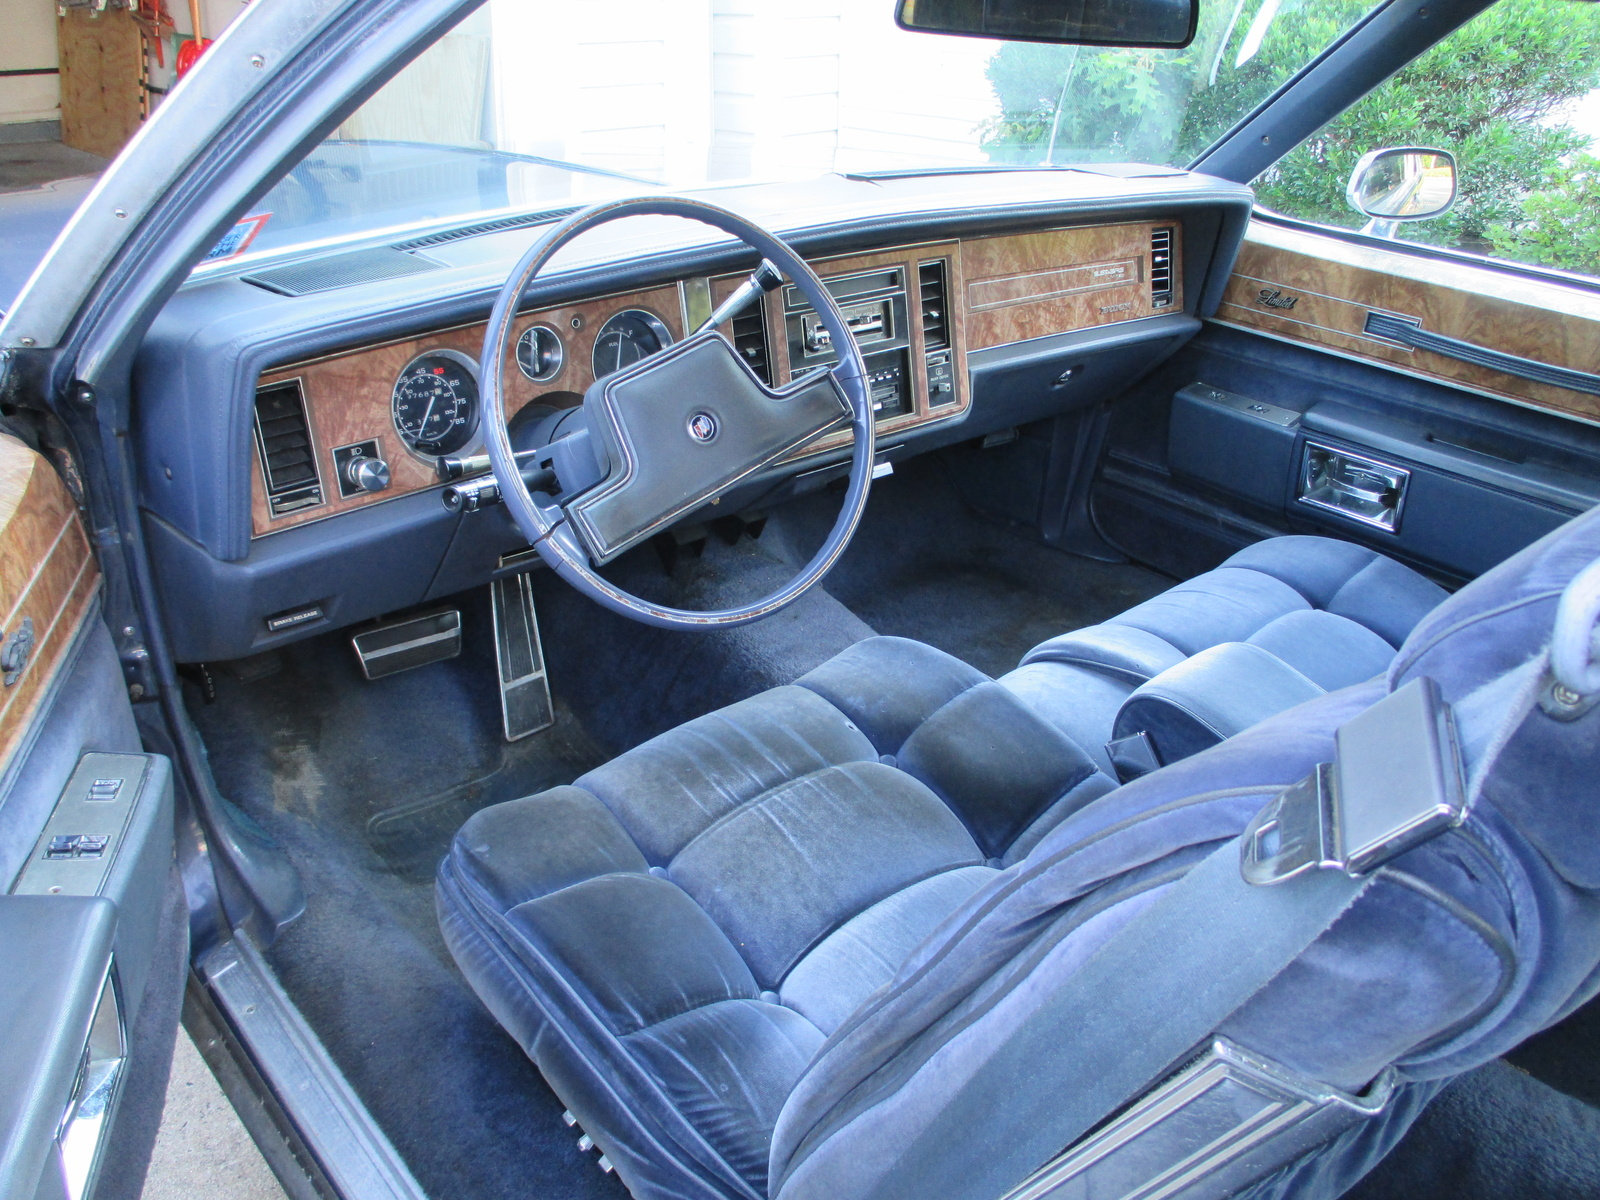 Picture of 1984 Buick LeSabre Limited Coupe, interior